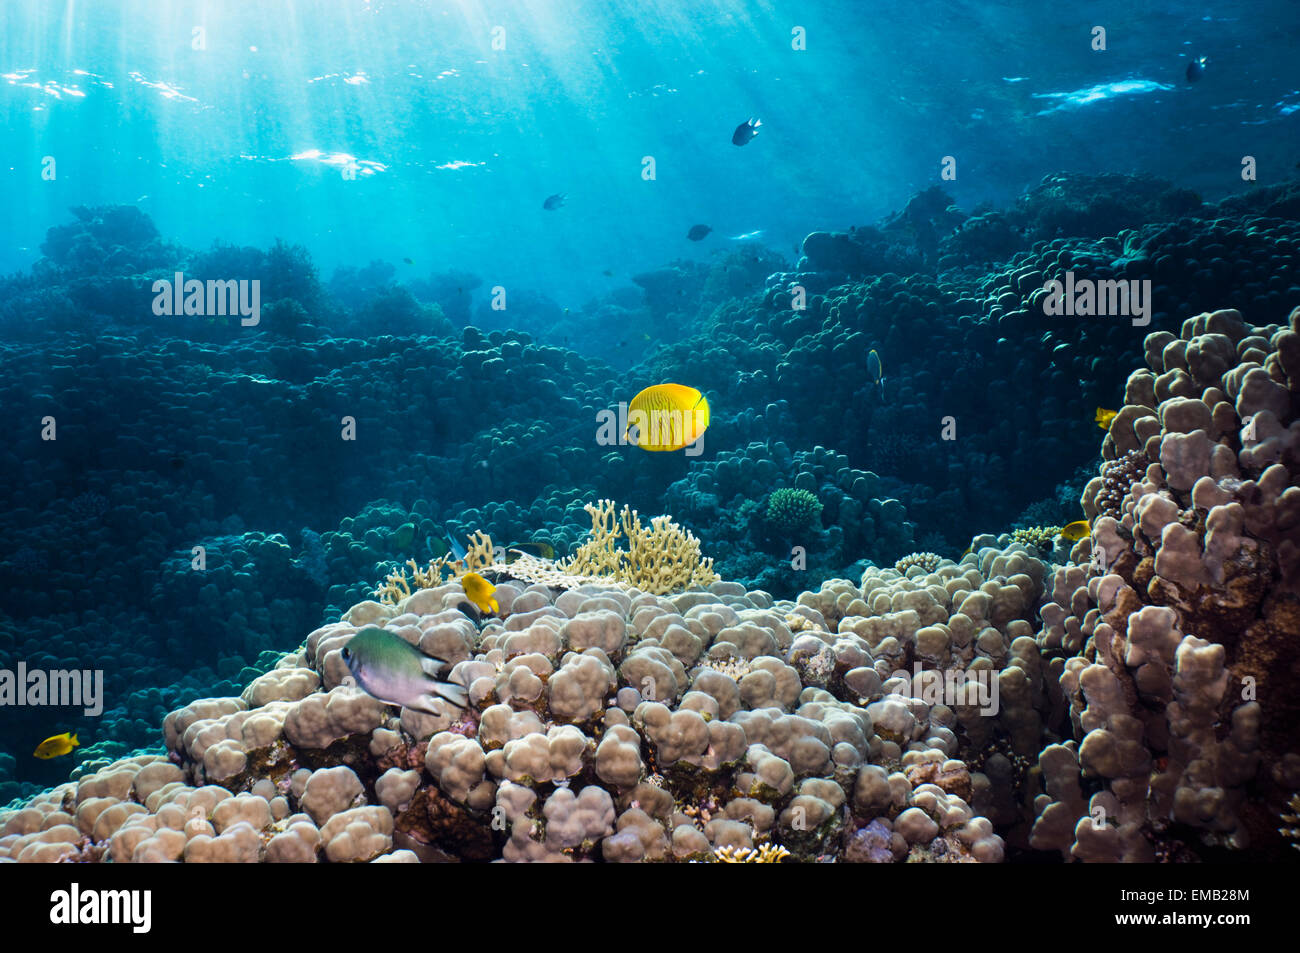 Golden butterflyfish (Chaetodon semilarvatus) over coral reef with shafts of sunlight.  Egypt, Red Sea. - Stock Image